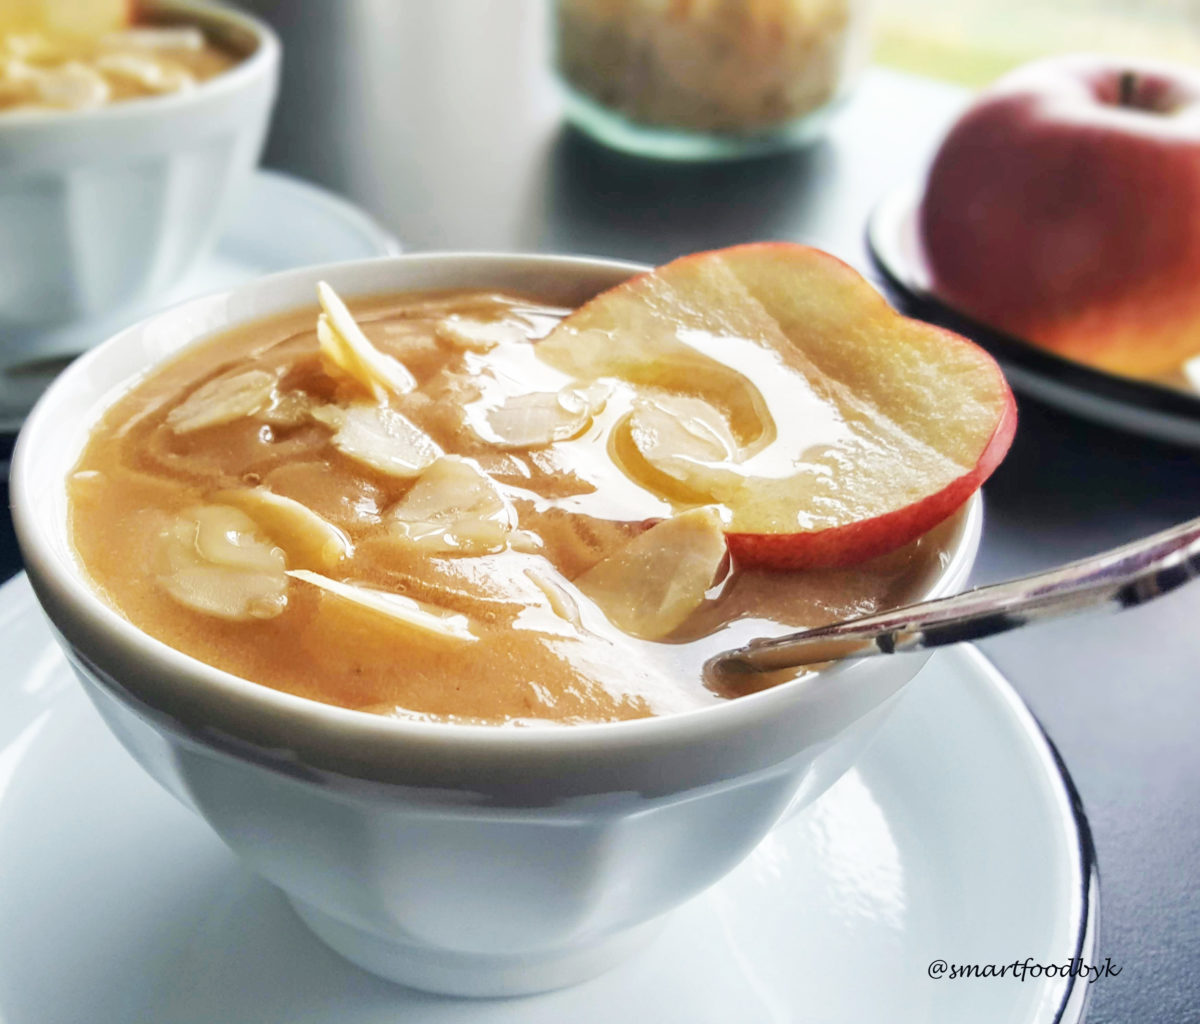 Vanilla applesauce with almonds and honey